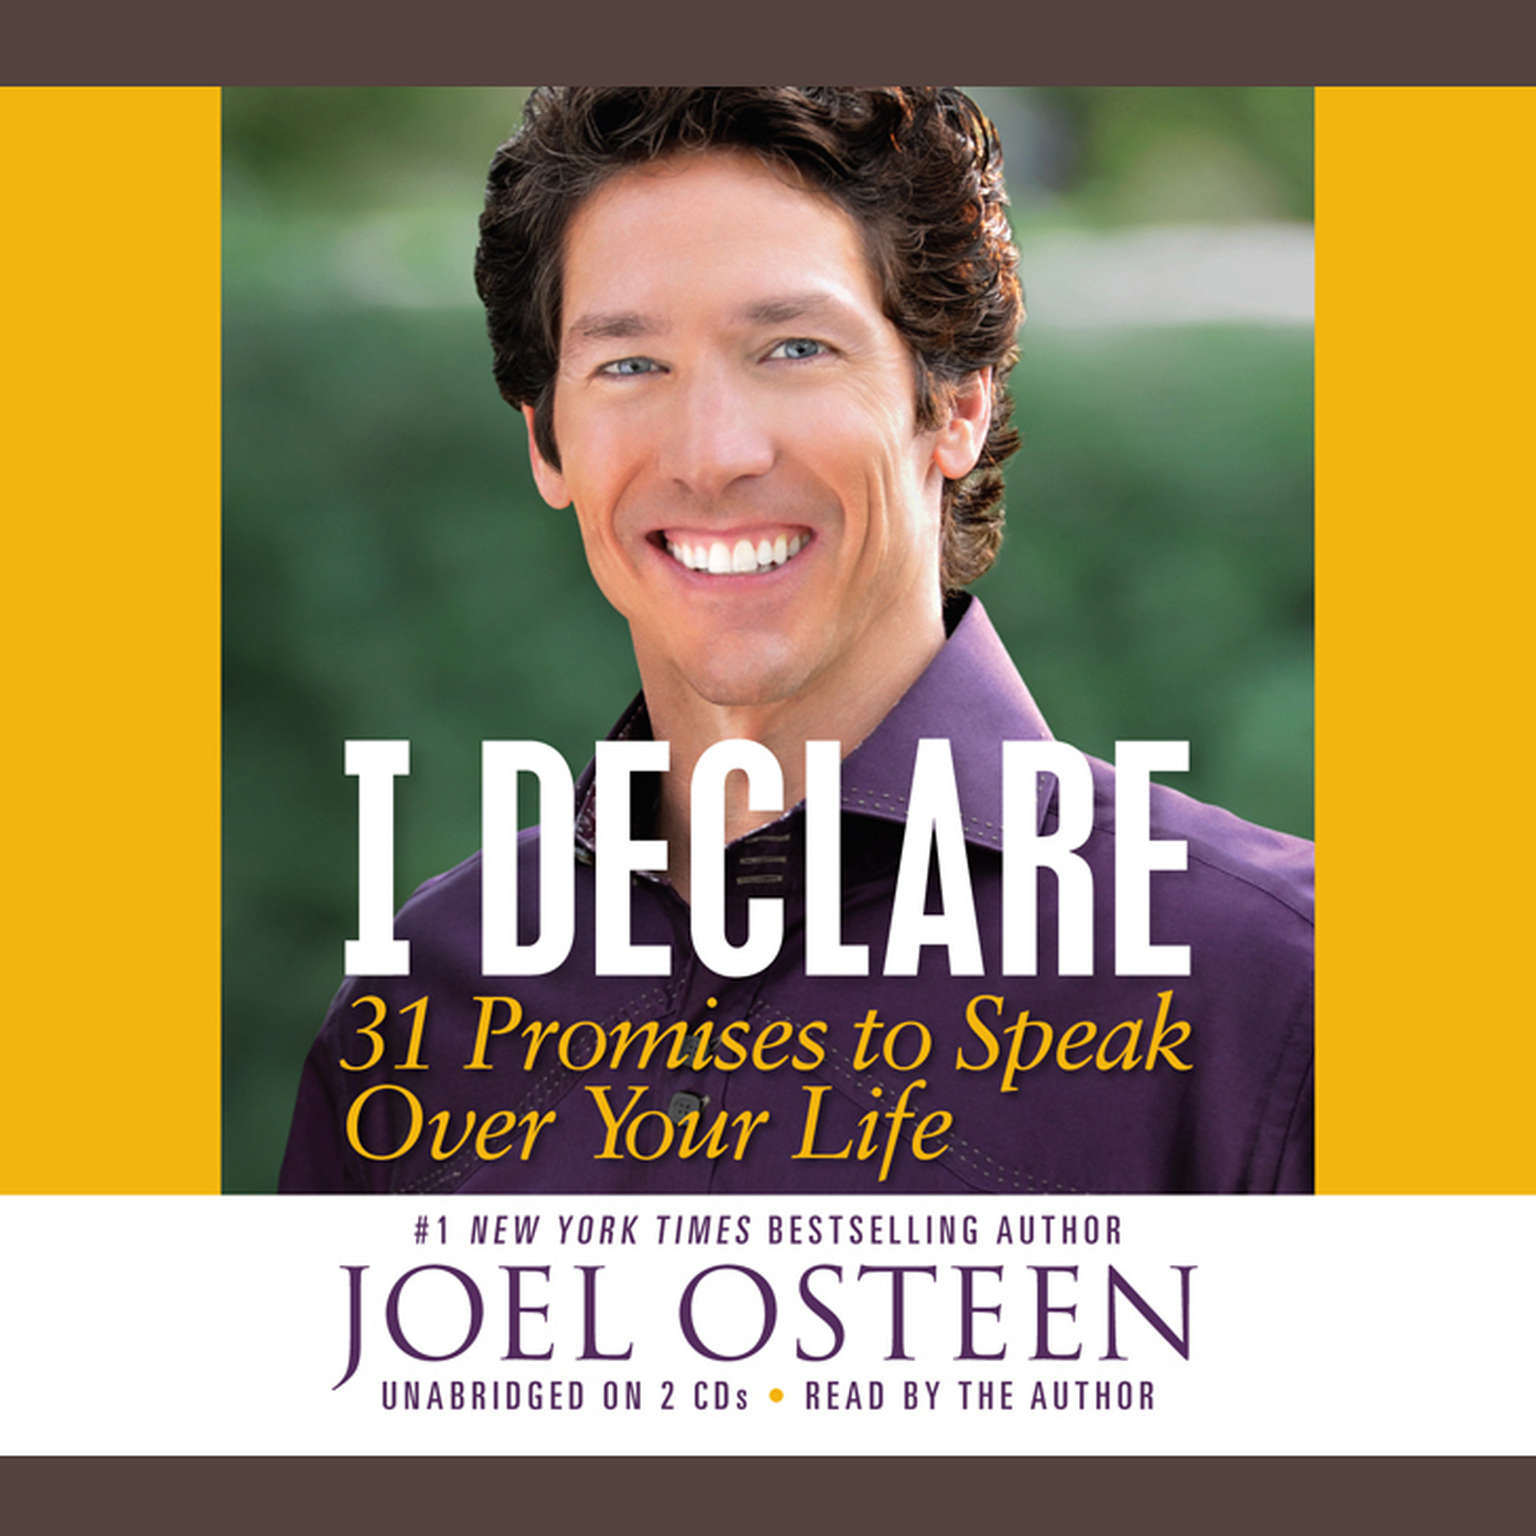 Joel Osteen I Declare 4 Cd set 31 promises to speak over your life Mint!!!